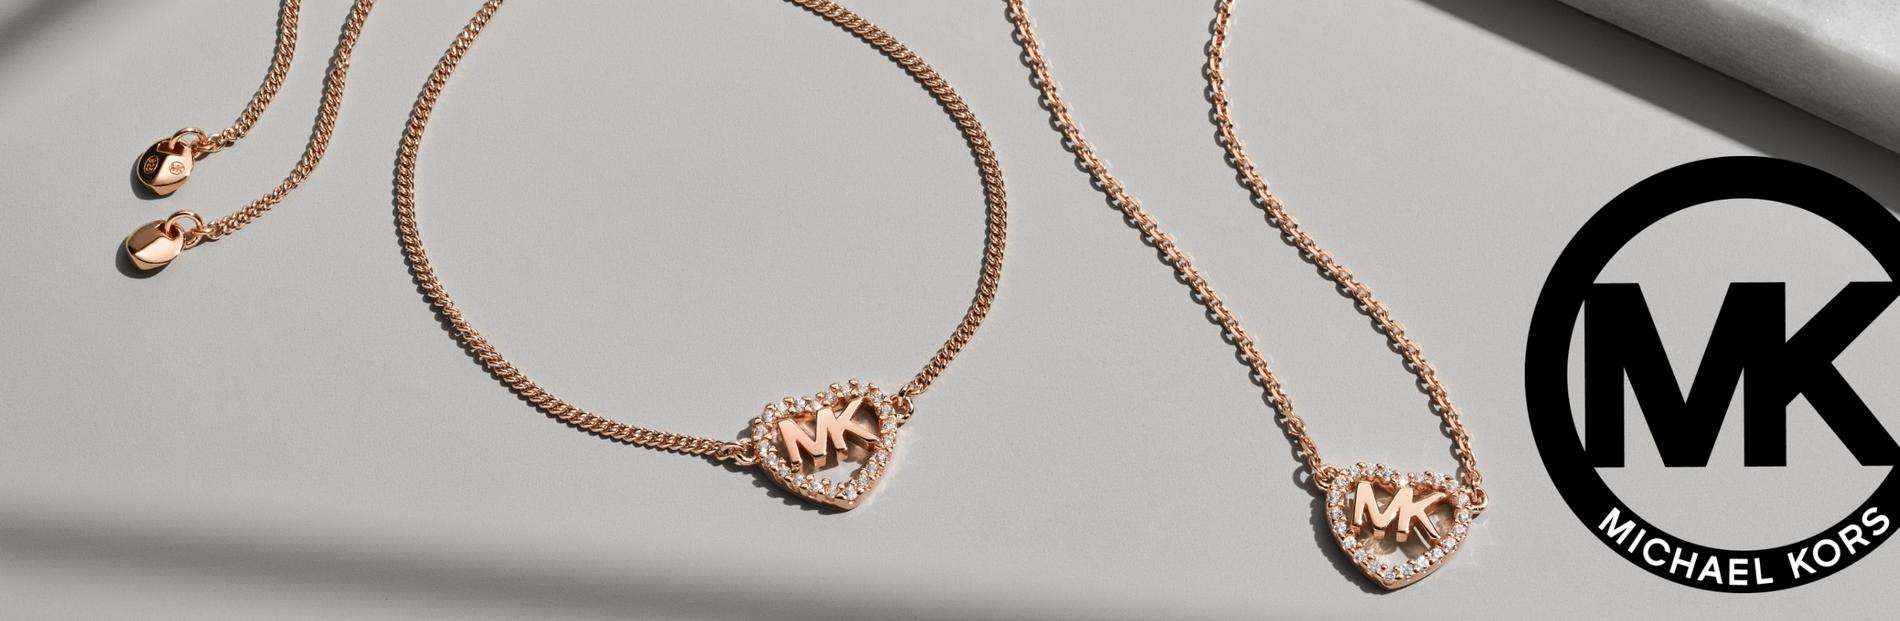 Rose Gold  Bracelet, neckless and earrings on a White background